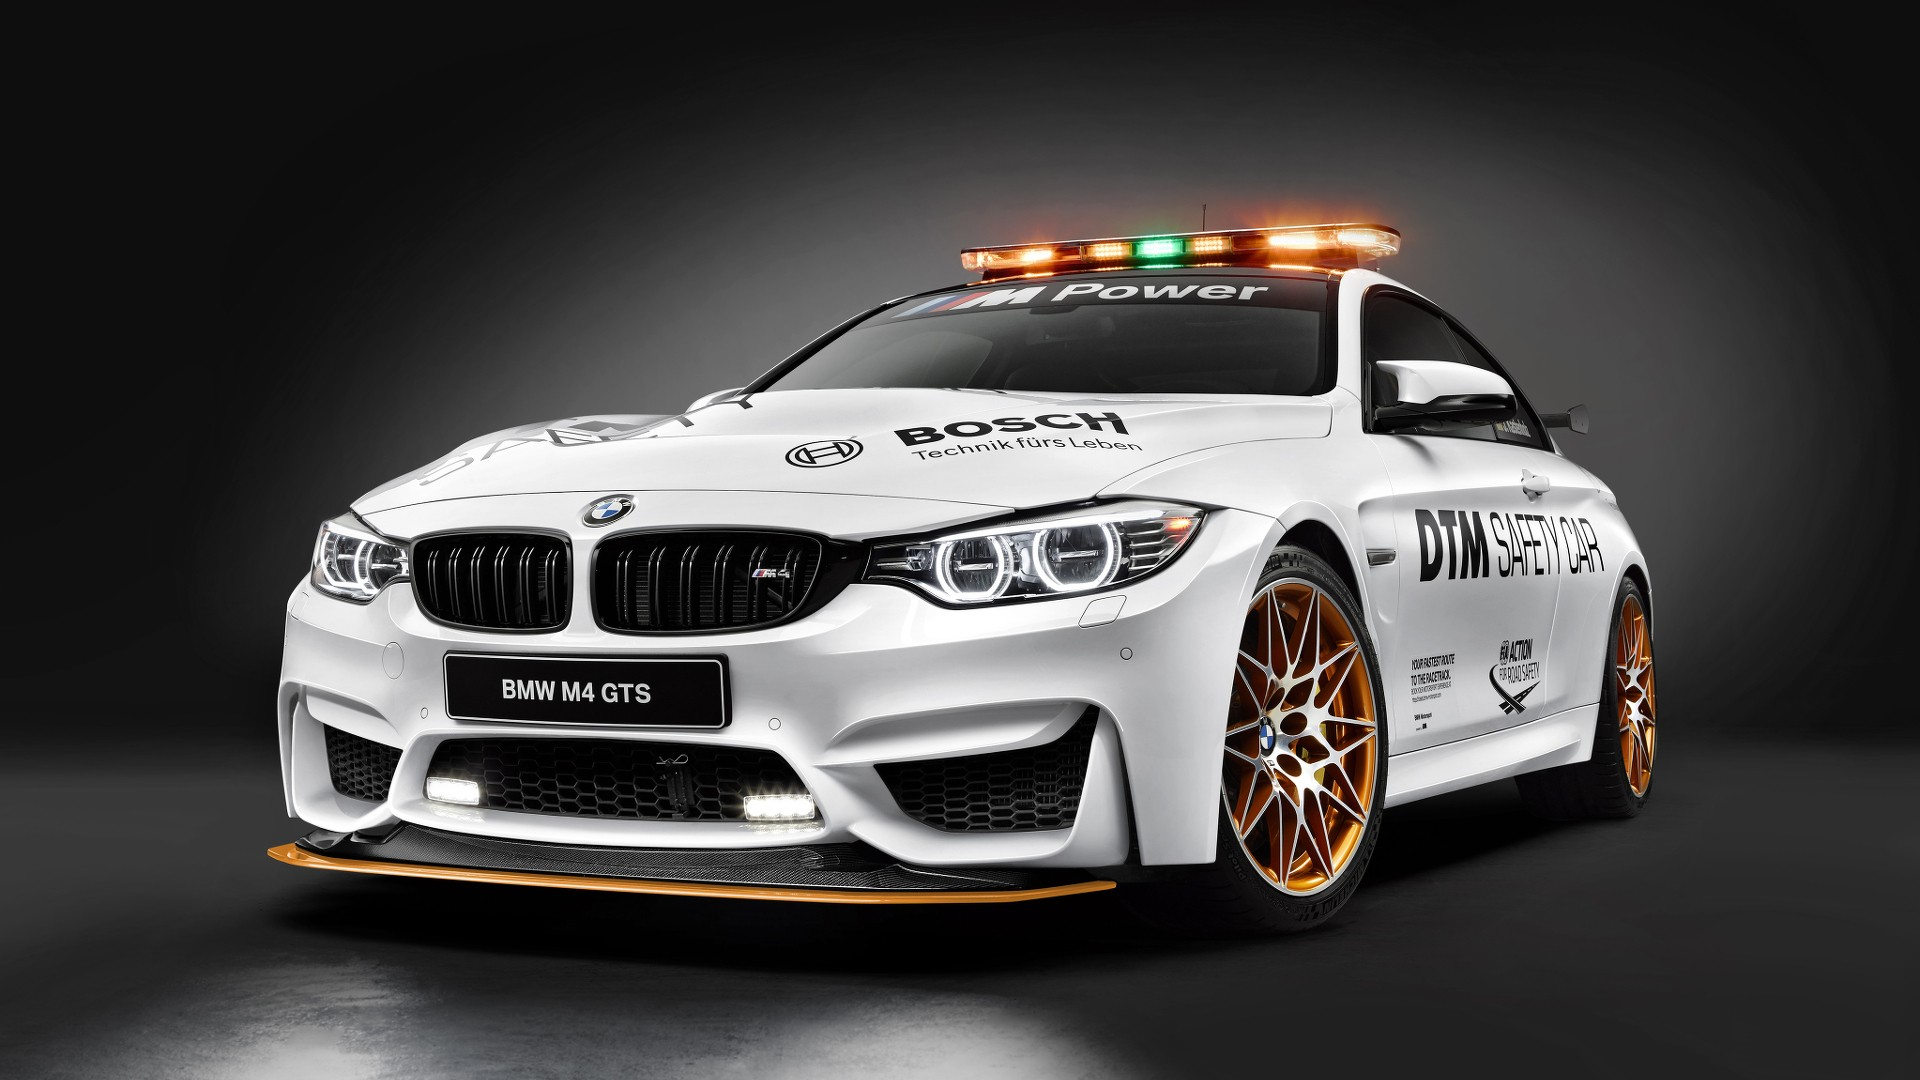 bmw reveals m4 gts safety car for 2016 dtm season autoevolution. Black Bedroom Furniture Sets. Home Design Ideas